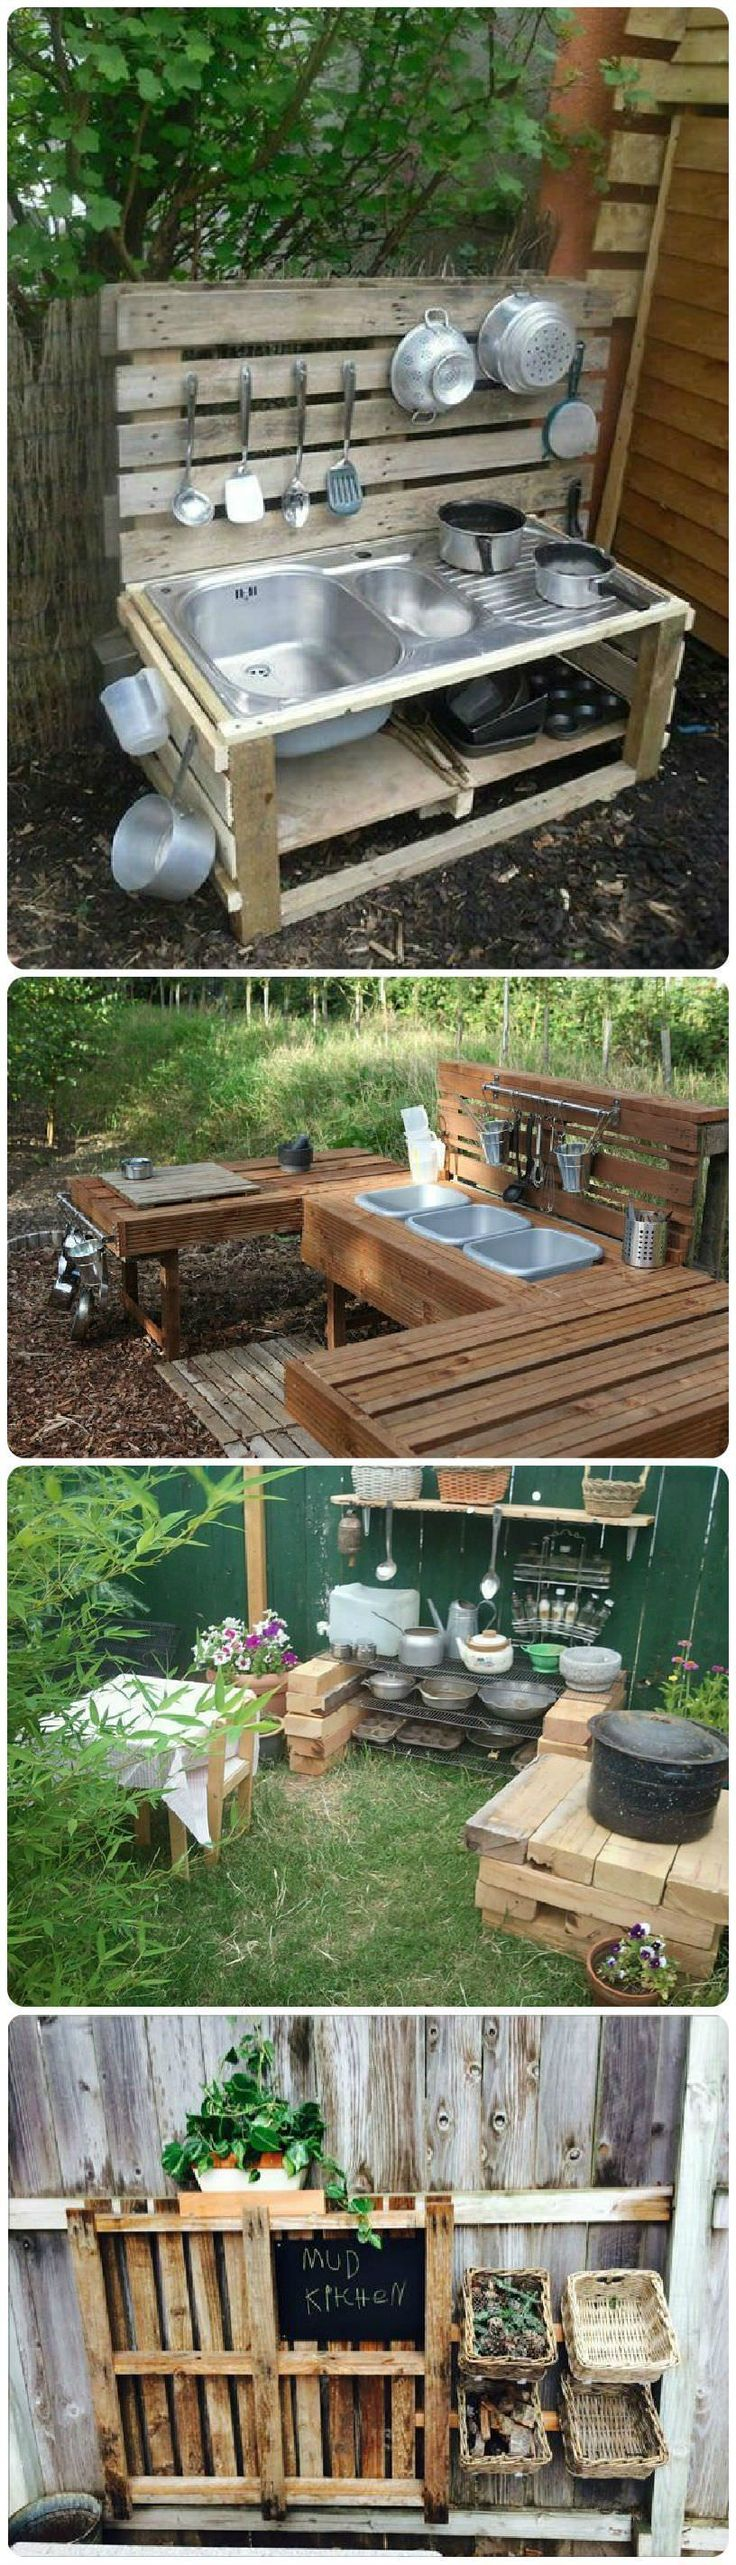 Mud kitchen (also known as an outdoor kitchen or mud pie kitchen) is one of the best resources in DIY projects for kids to play outside as kids playhouse. #playhousesforoutside #outsideplayhouse #diyplayhouse